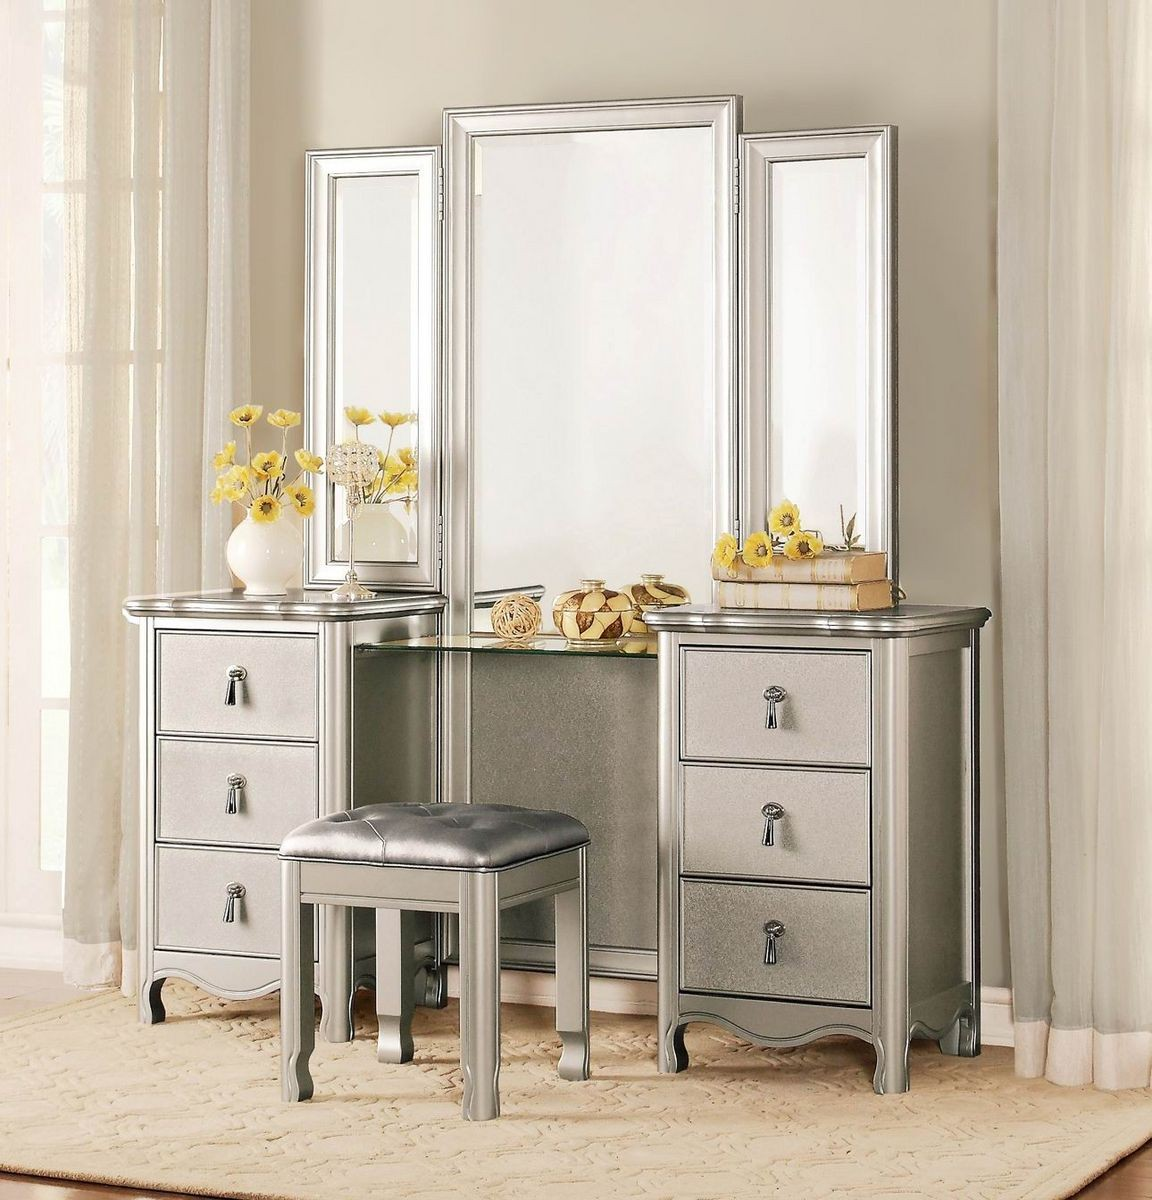 Image of: Top Mirrored Vanity Table